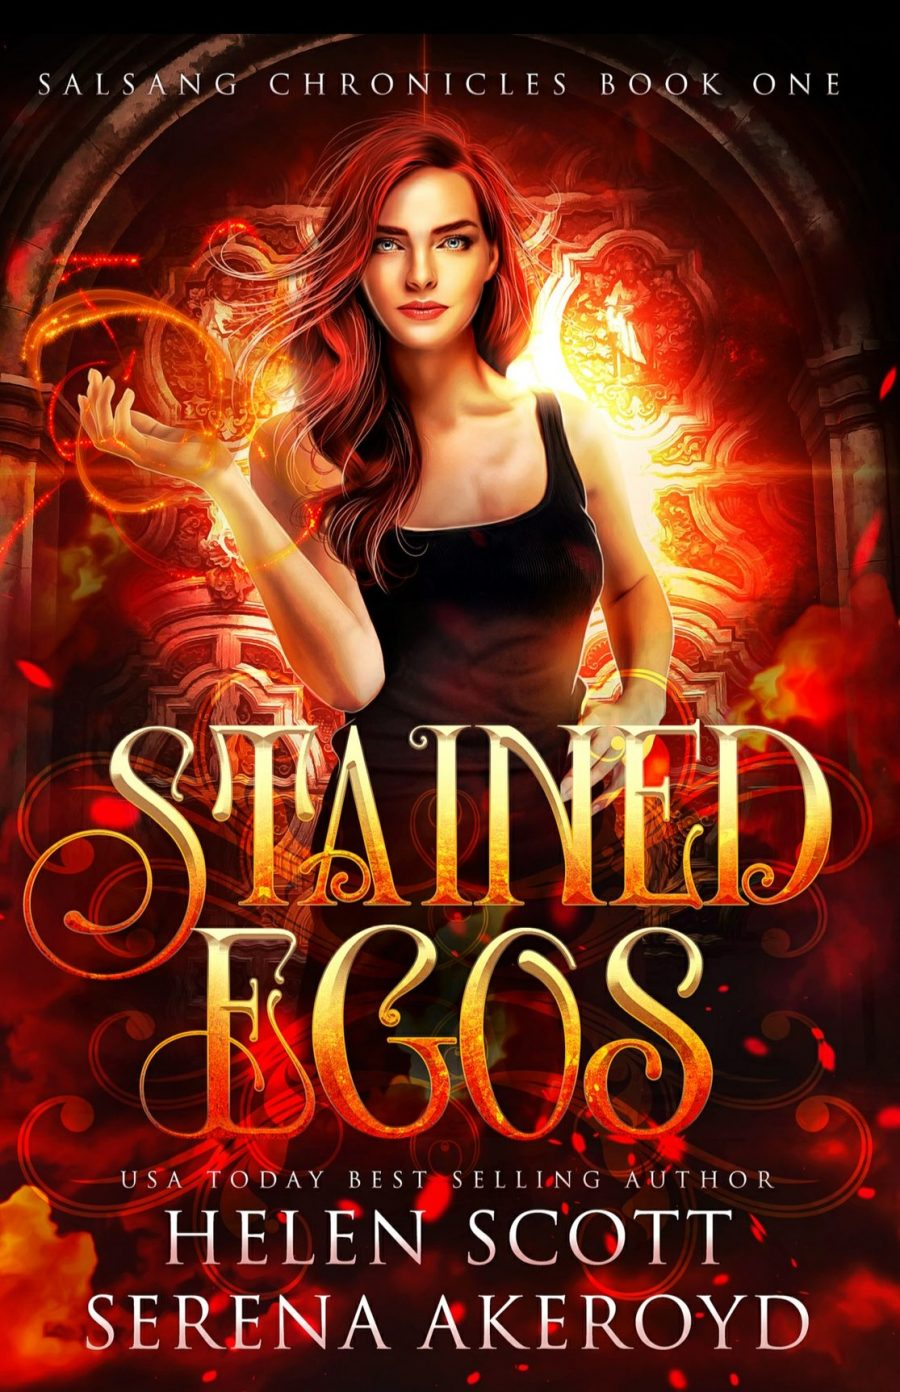 Stained Egos by Helen Scott and Serena Akeroyd - A Book Review #BookReview #RH #WhyChoose #MediumBurn #Paranormal #PNR #Academy #School #BooksAndBlurbs